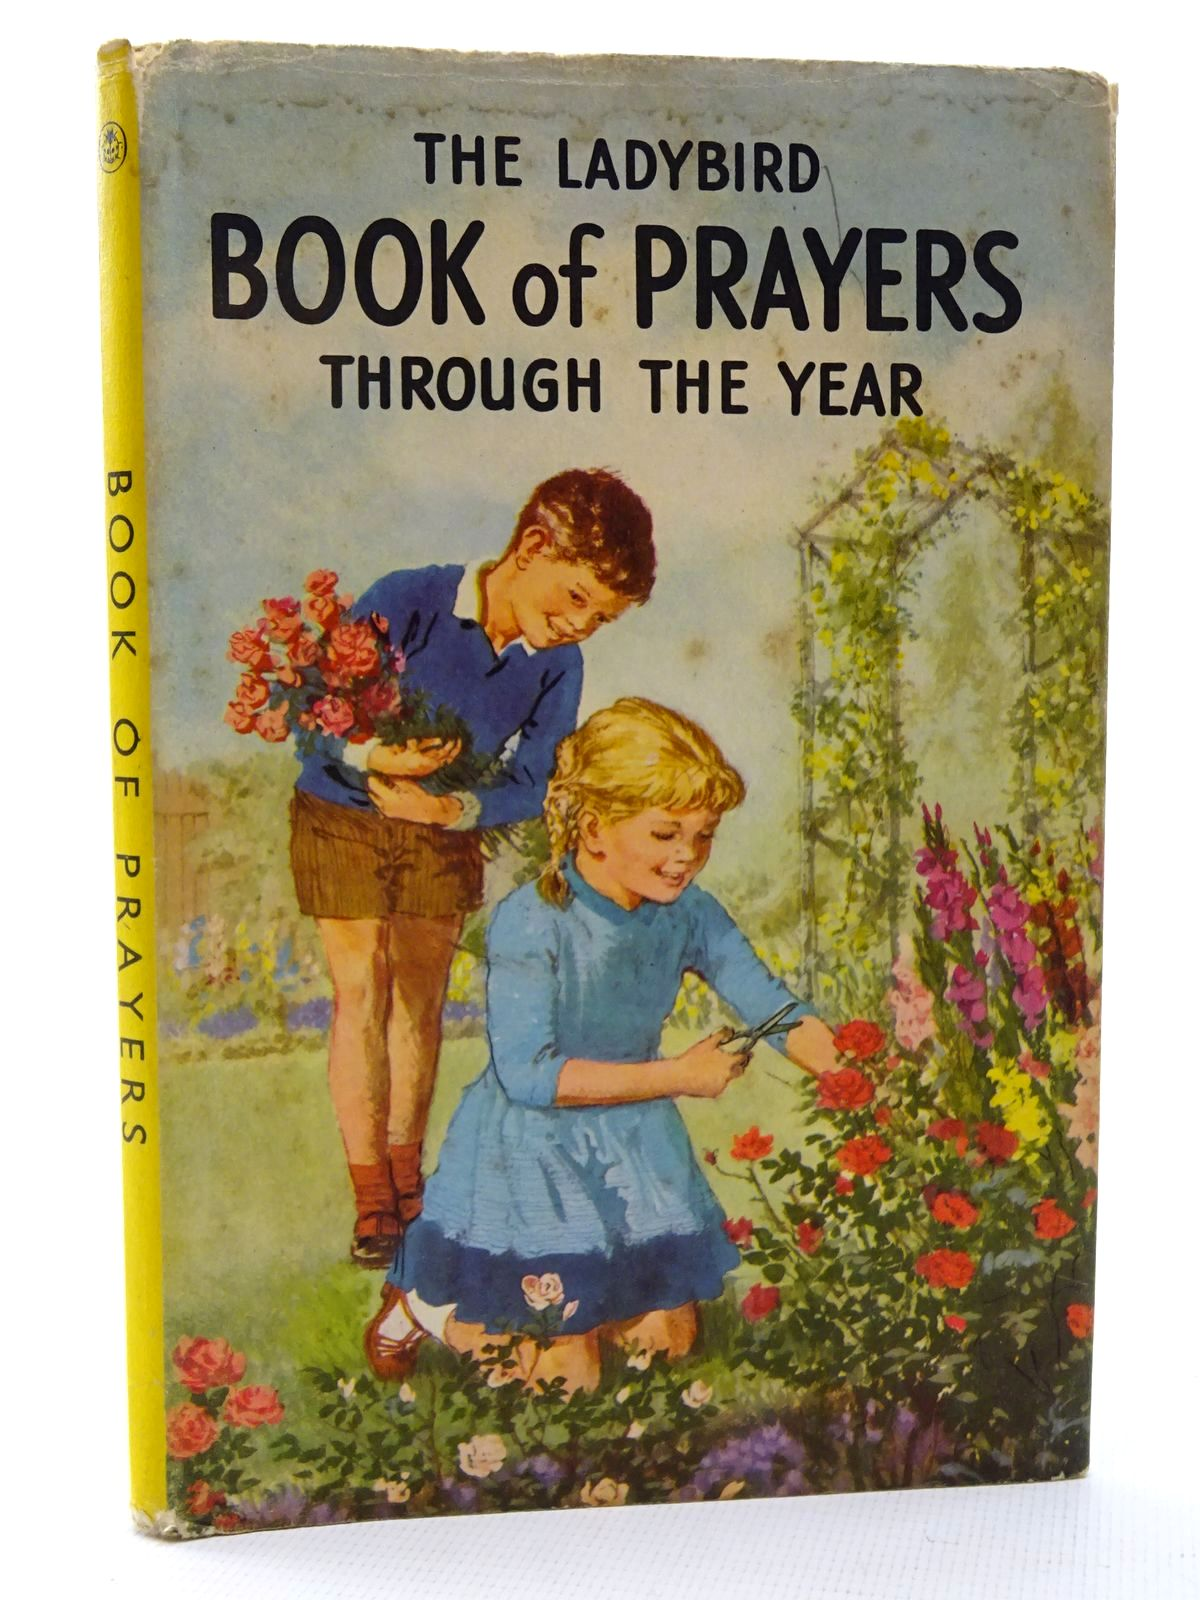 Photo of THE LADYBIRD BOOK OF PRAYERS THROUGH THE YEAR written by Rostron, Hilda I. illustrated by Uptton, Clive published by Wills & Hepworth Ltd. (STOCK CODE: 2124341)  for sale by Stella & Rose's Books